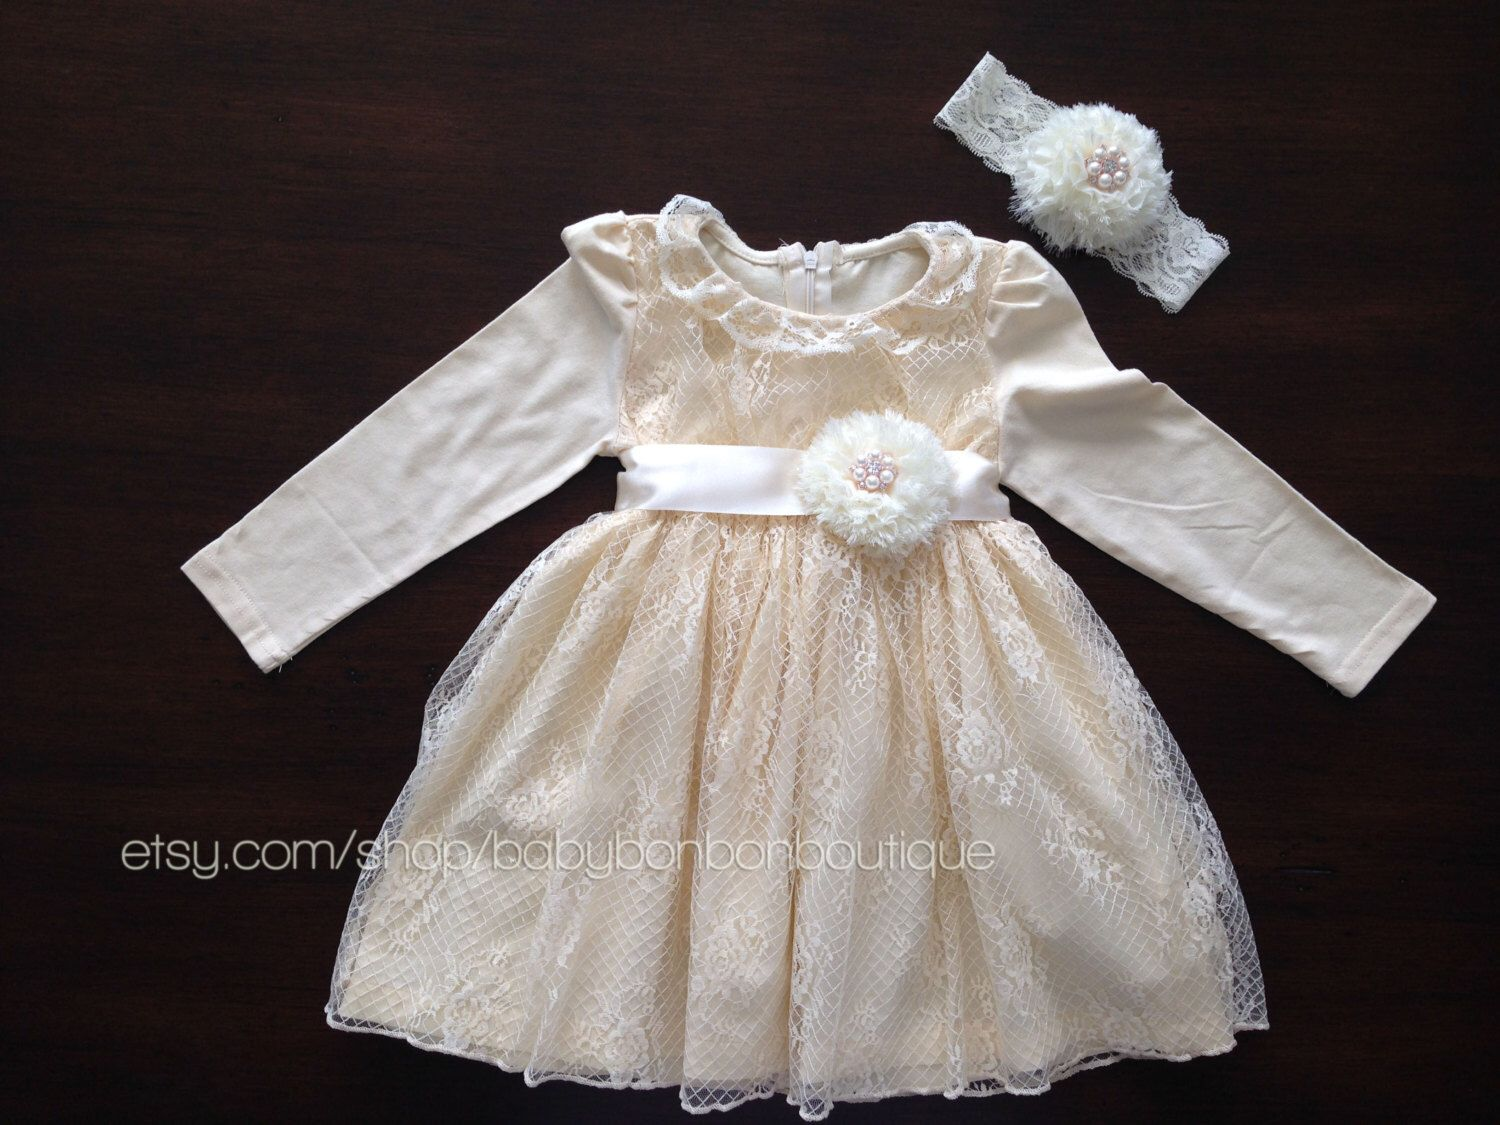 Lace dress for baby girl  baby girl lace dress headband and sash flower girl cream dress